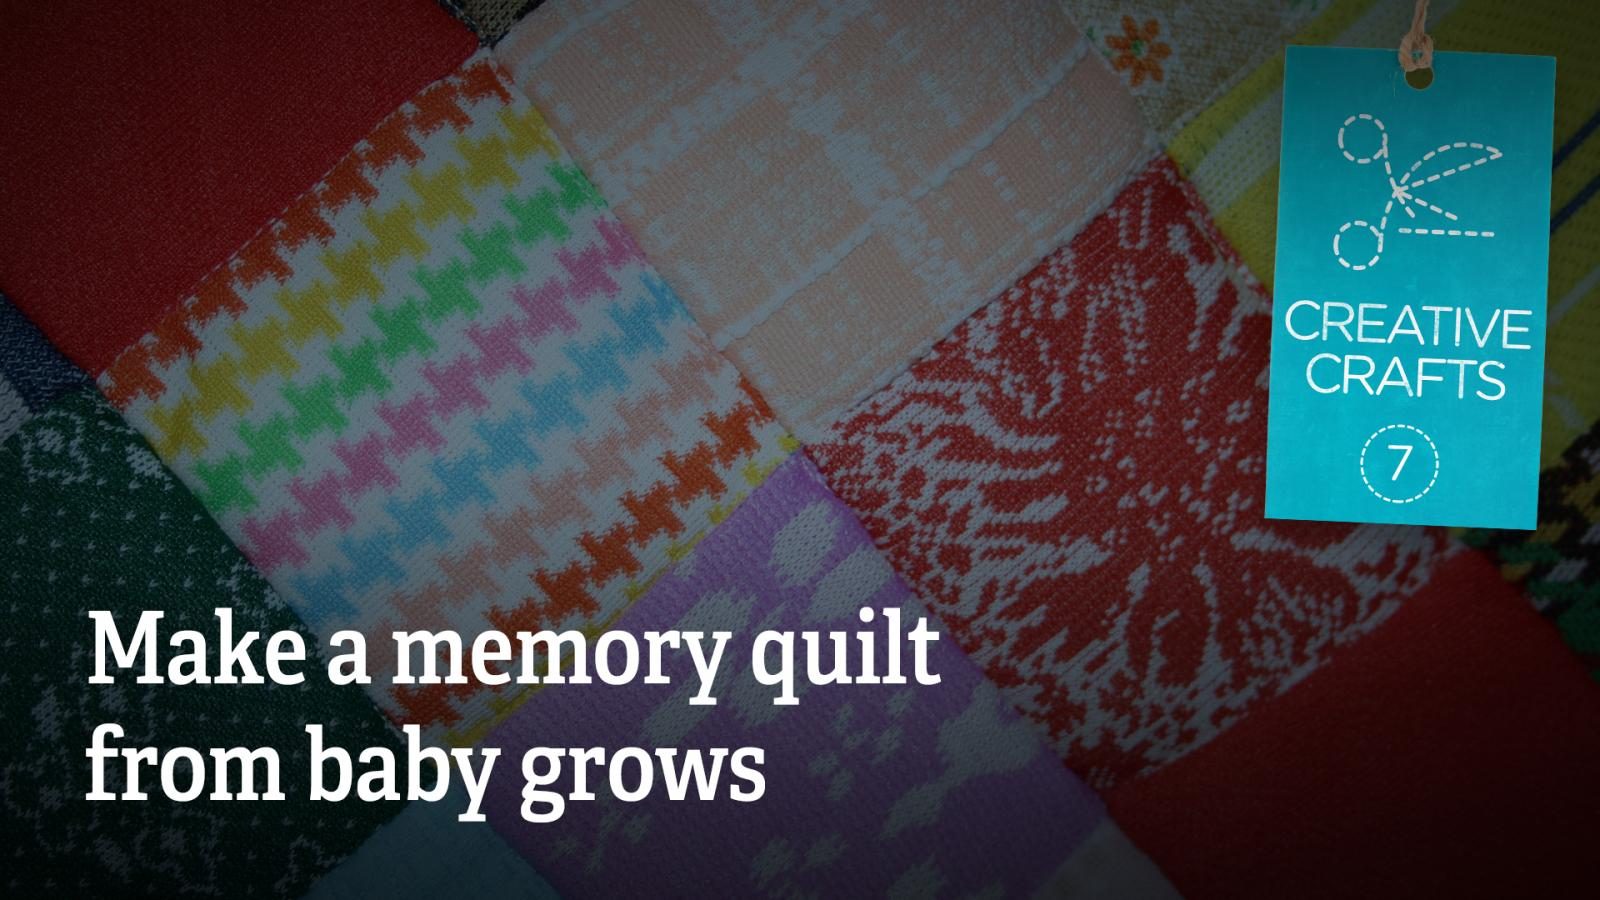 Creative Crafts Making A Memory Quilt From Babygrows